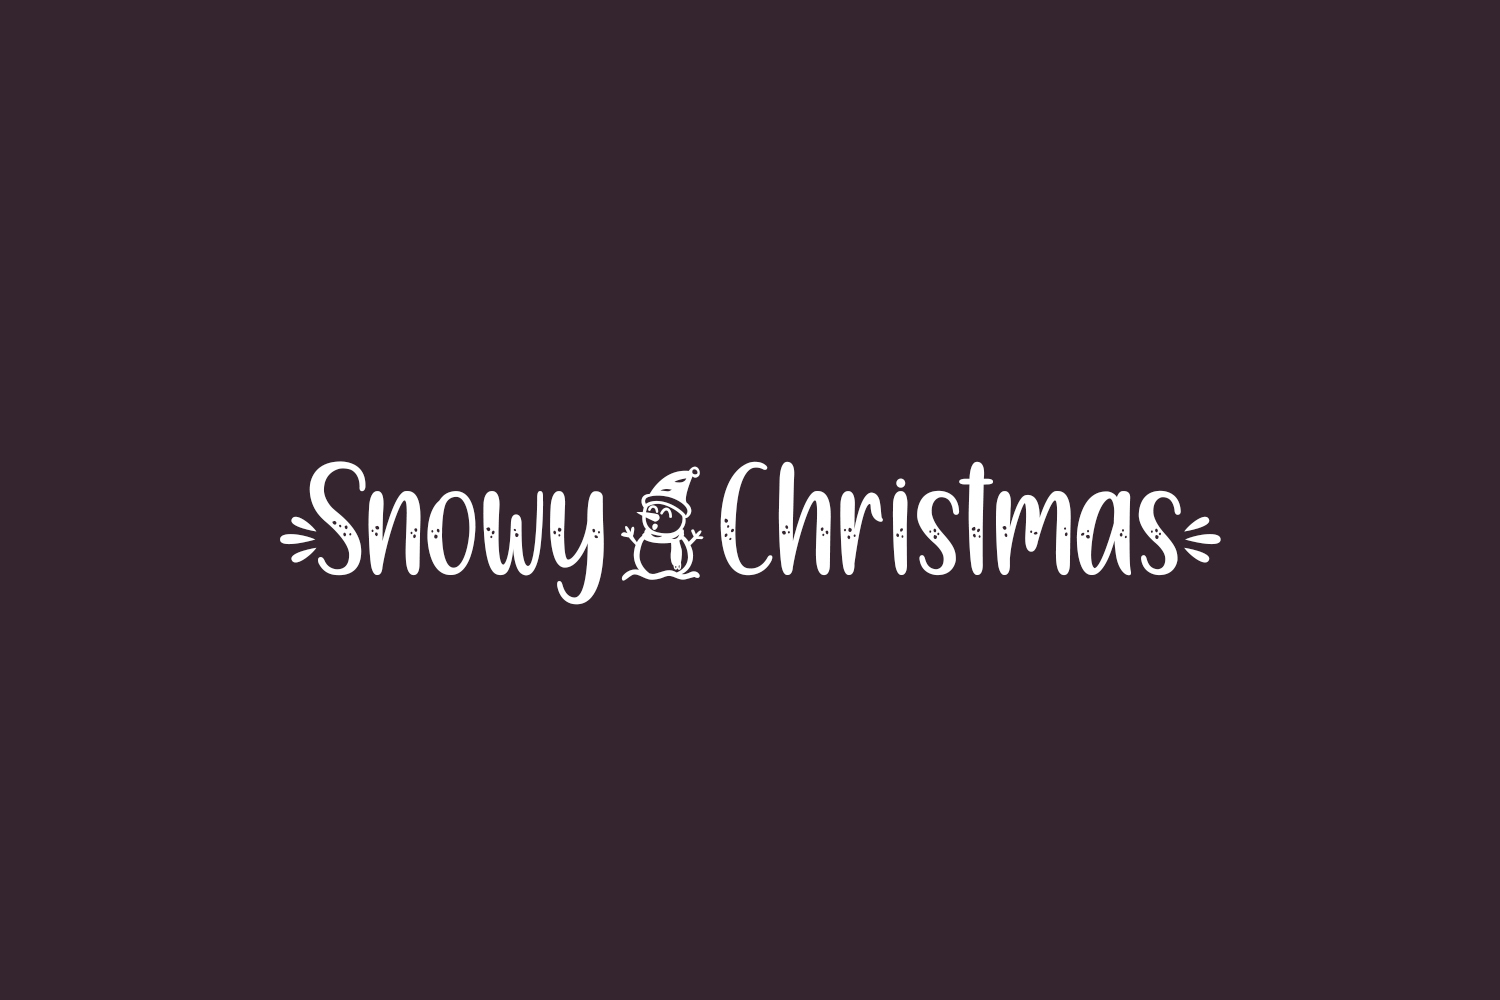 Snowy Christmas Free Font